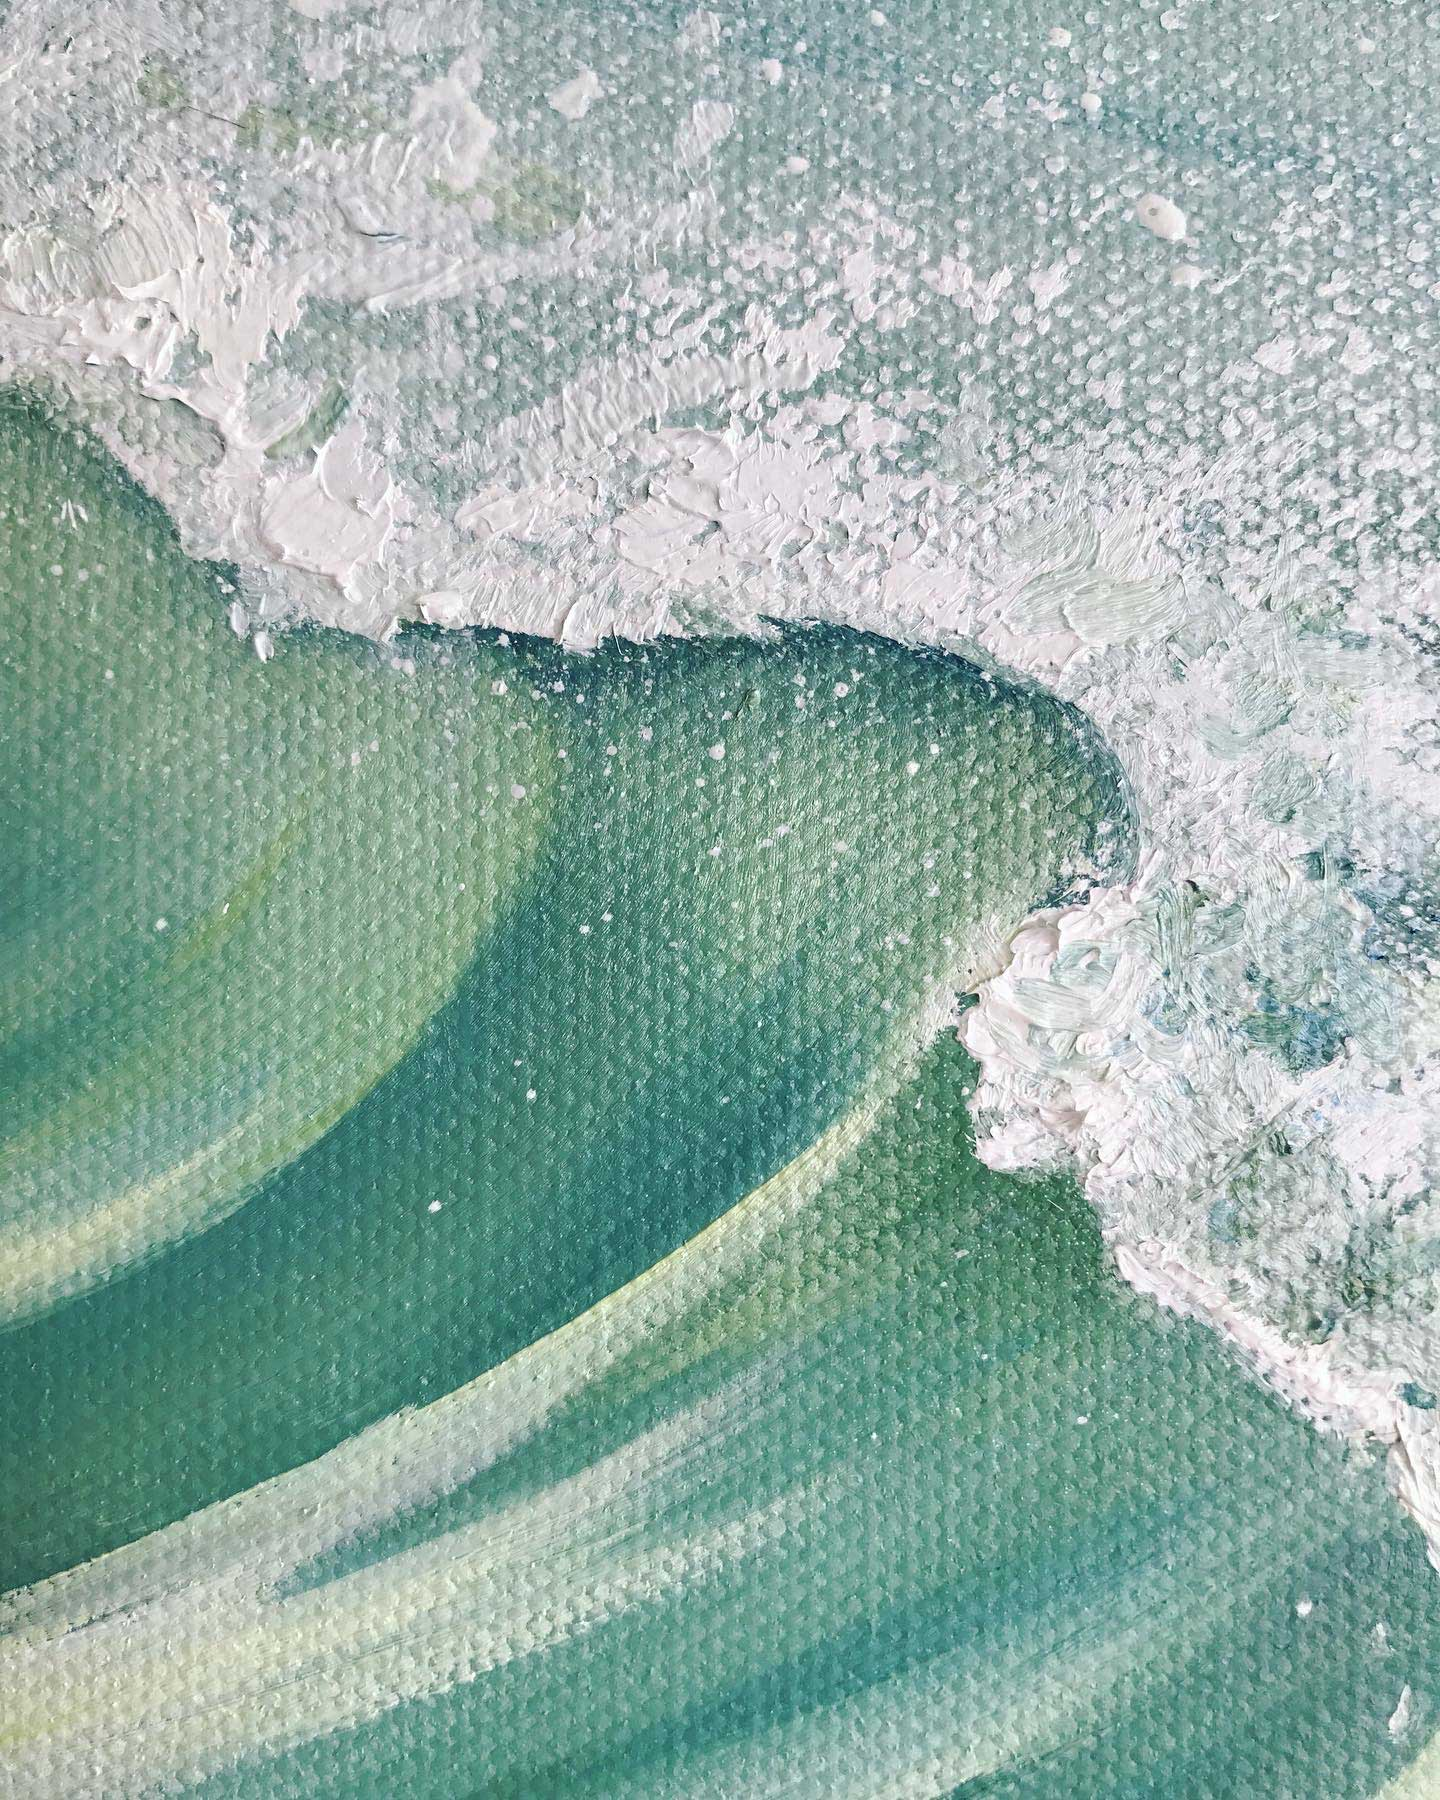 Close up of oil painting of wave with foam and spray